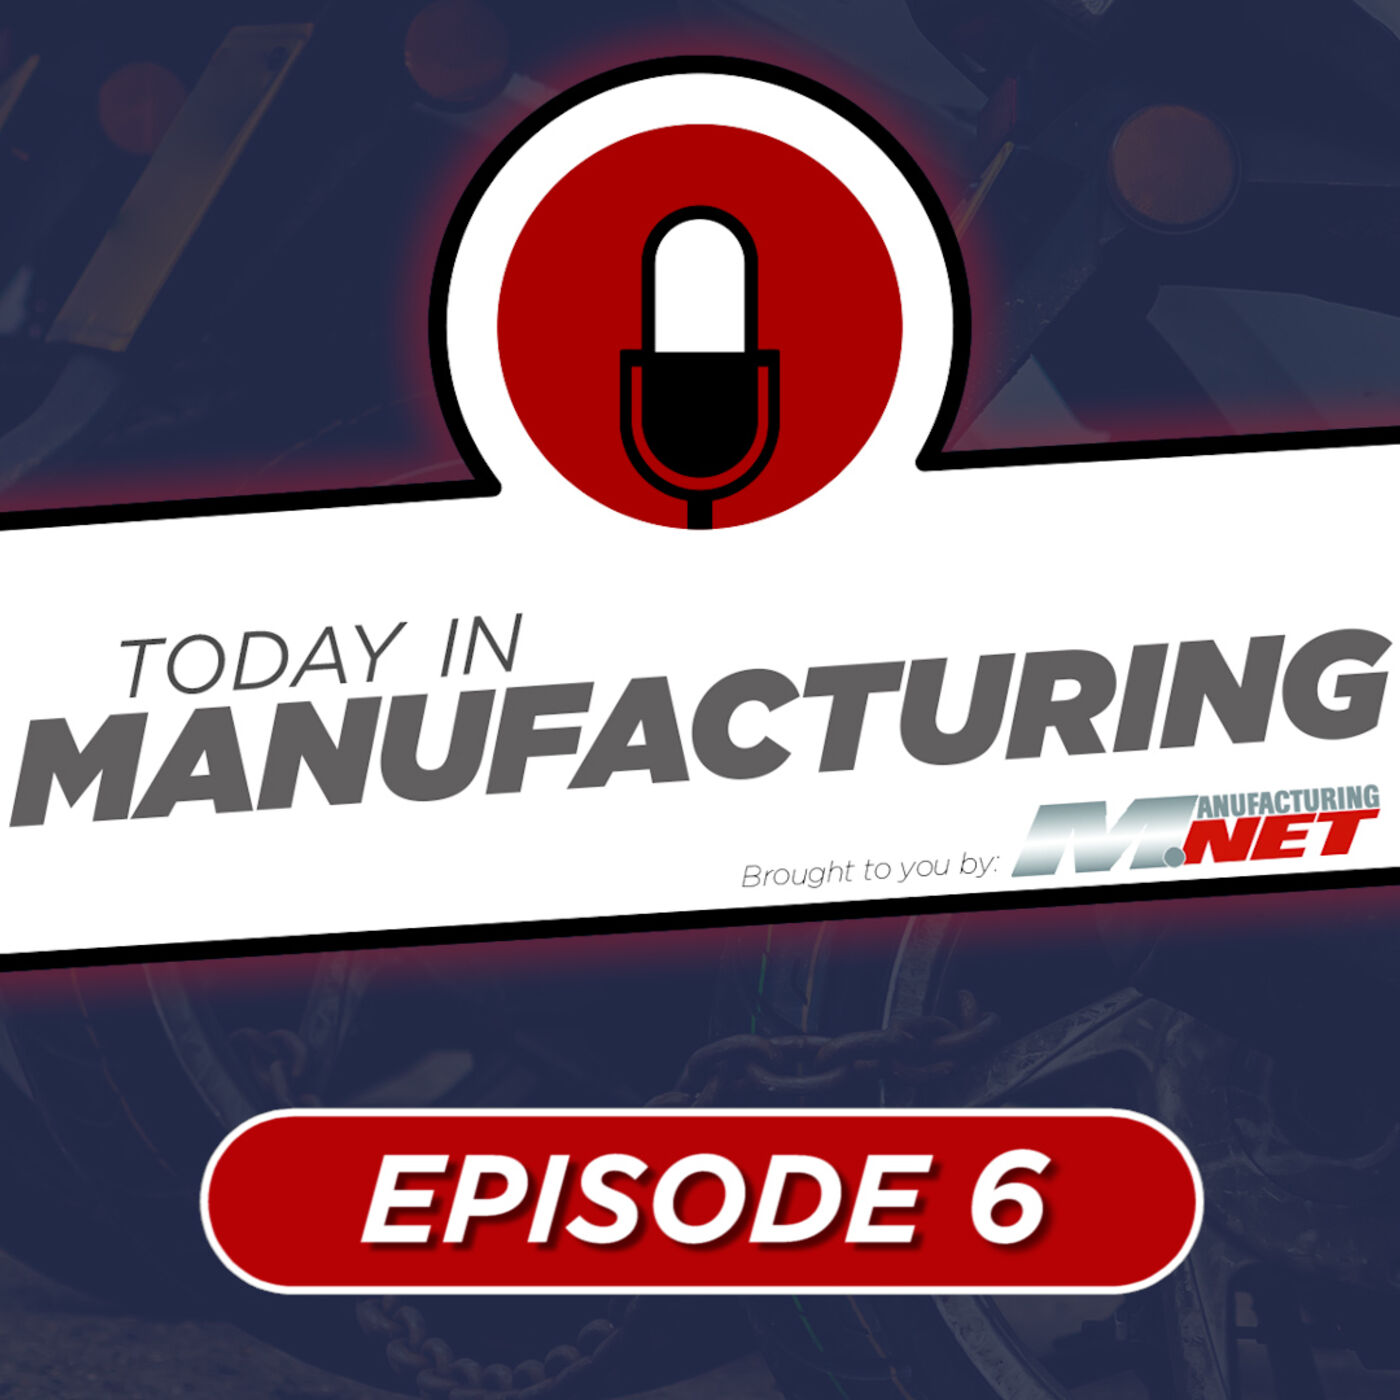 Today in Manufacturing Ep. 6: Scooter Megafactory, Lunar Ark, Engineer Espionage, Engine Cracks & OSHA's Top 10 in 2020.